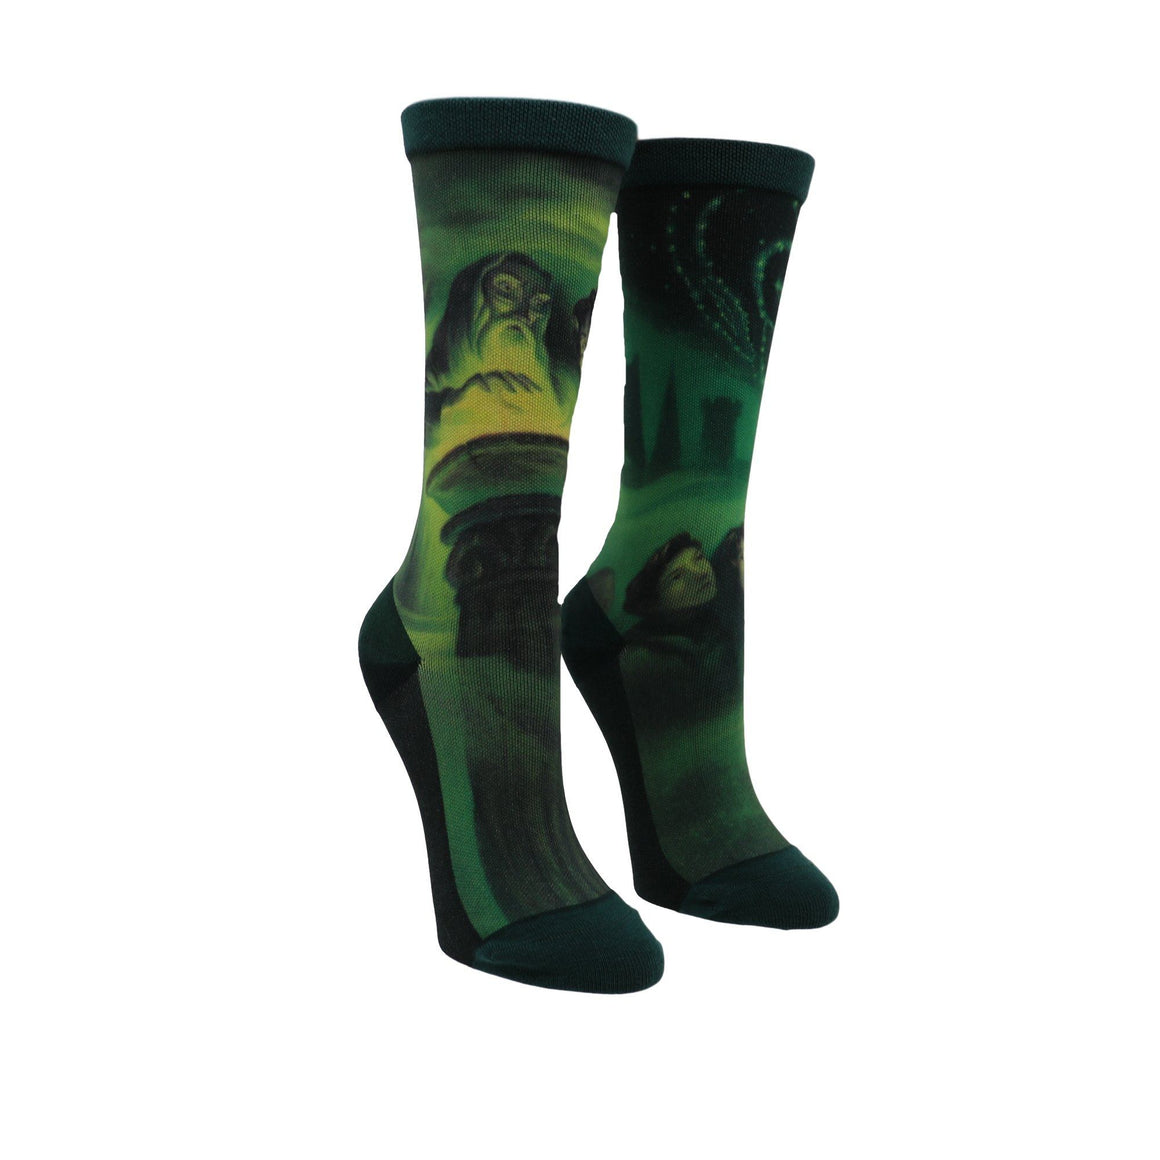 Harry Potter and the Half Blood Prince Socks - Small by Out of Print - The Sock Spot